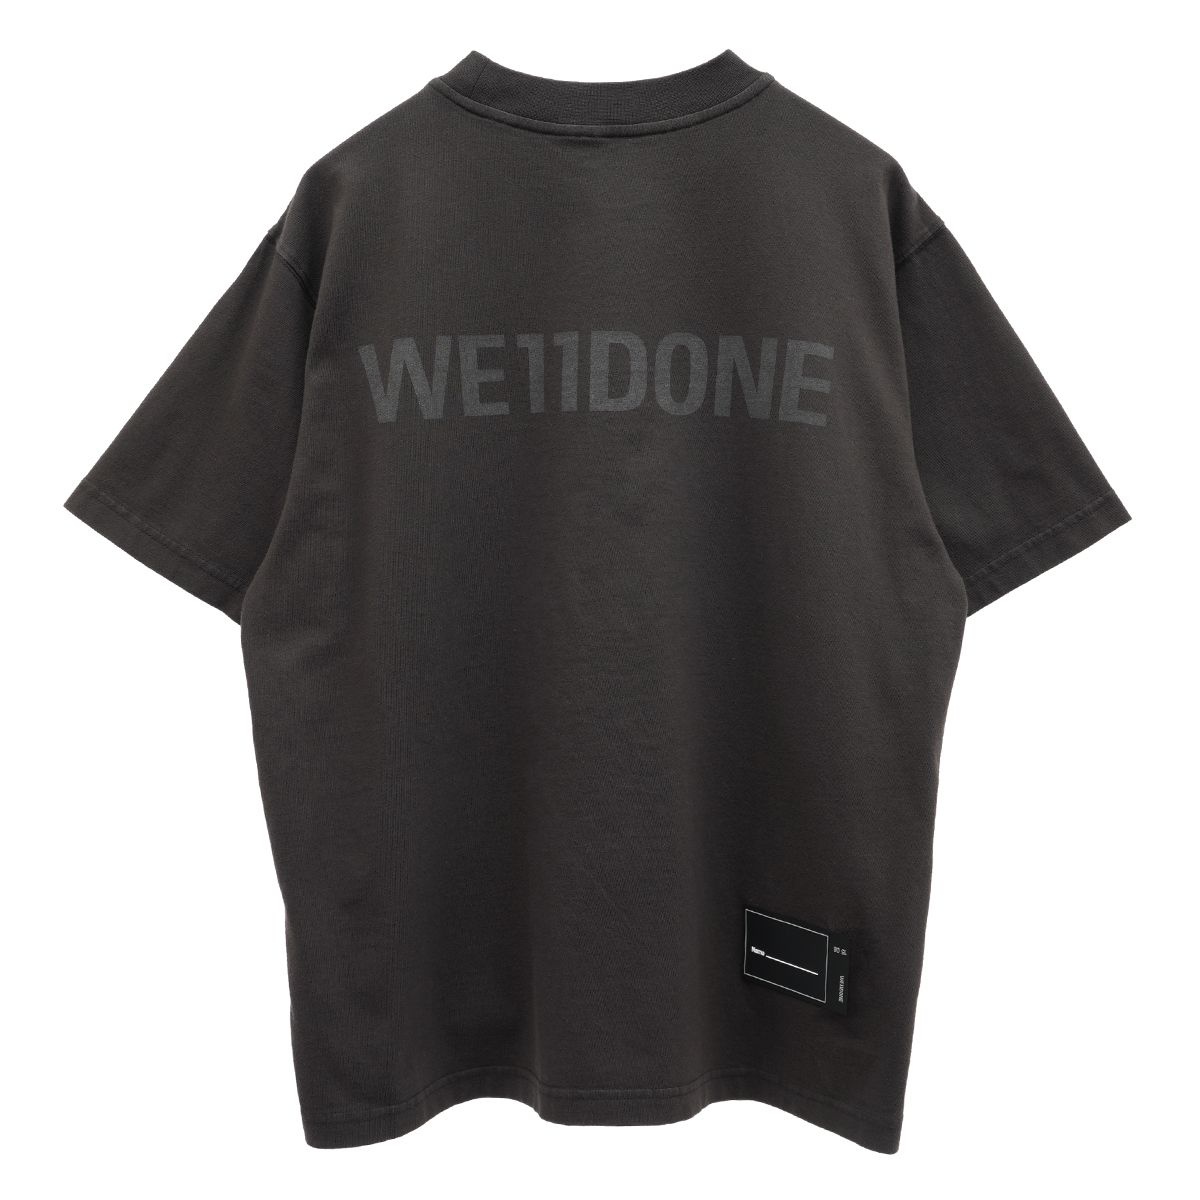 WE11DONE NEW MOVIE COLLAGE T-SHIRT / CHARCOAL